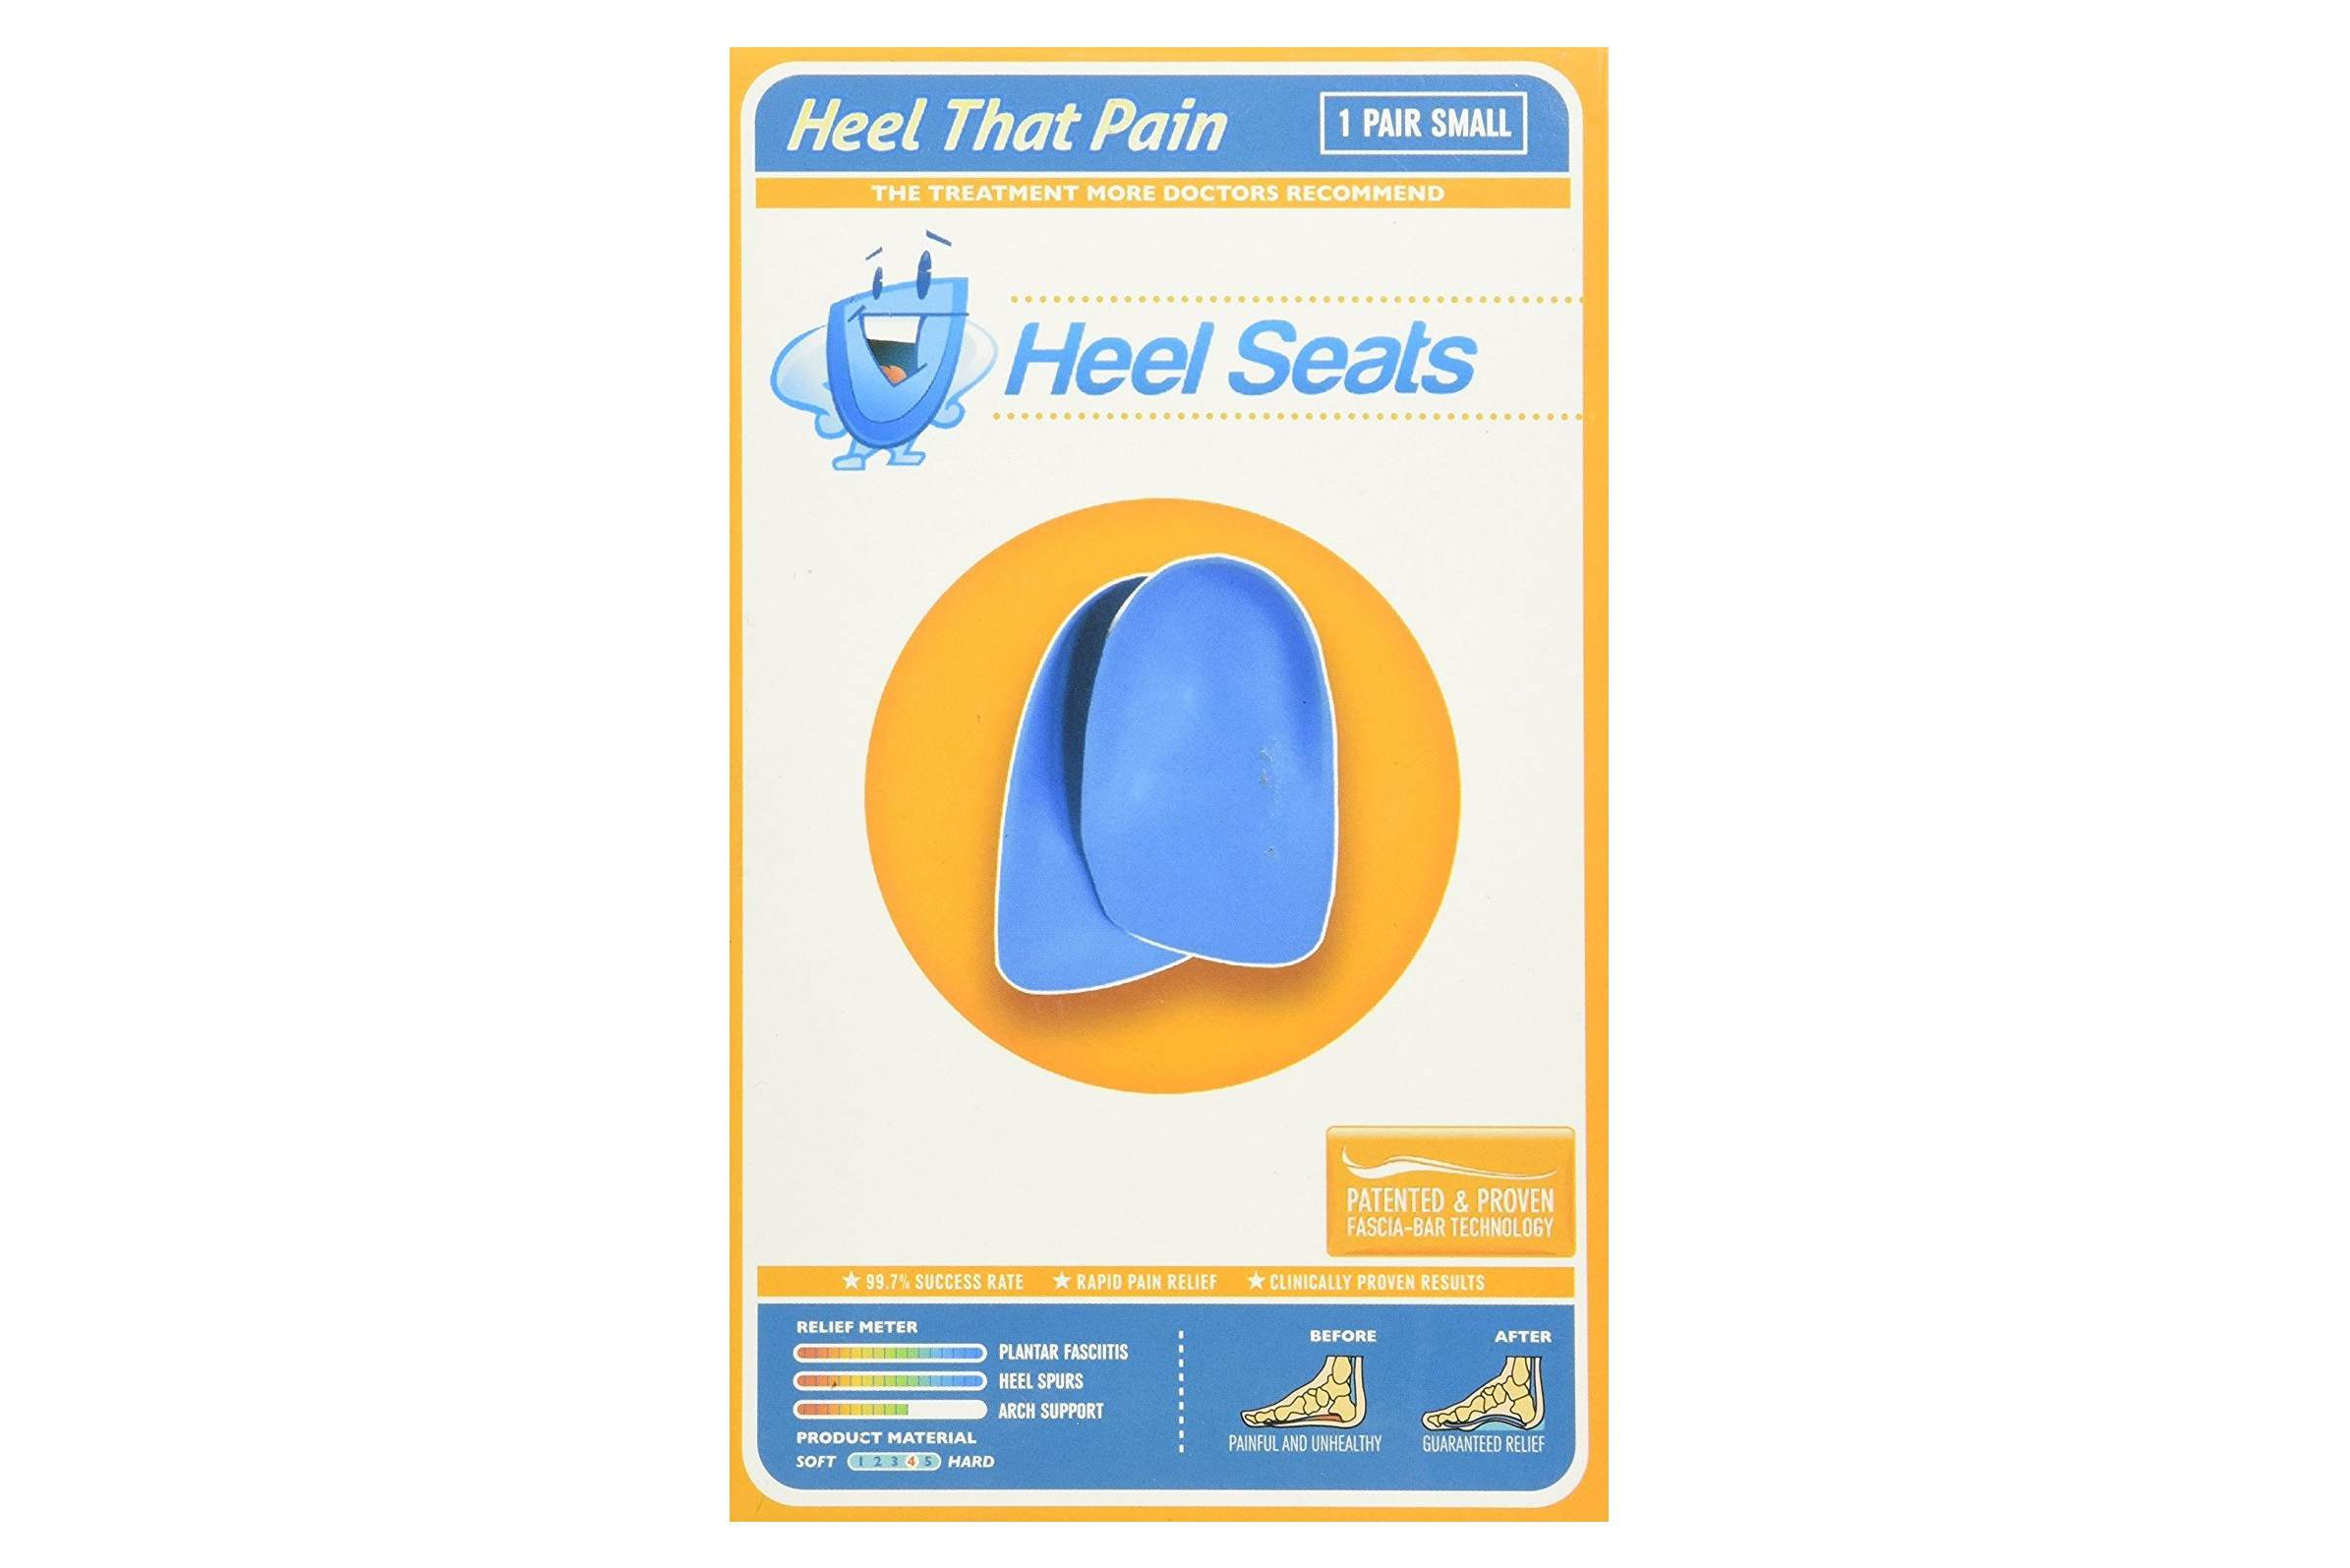 222aca1f10b0fb The 9 Best Plantar Fasciitis and Heel Spur Relief Products of 2019